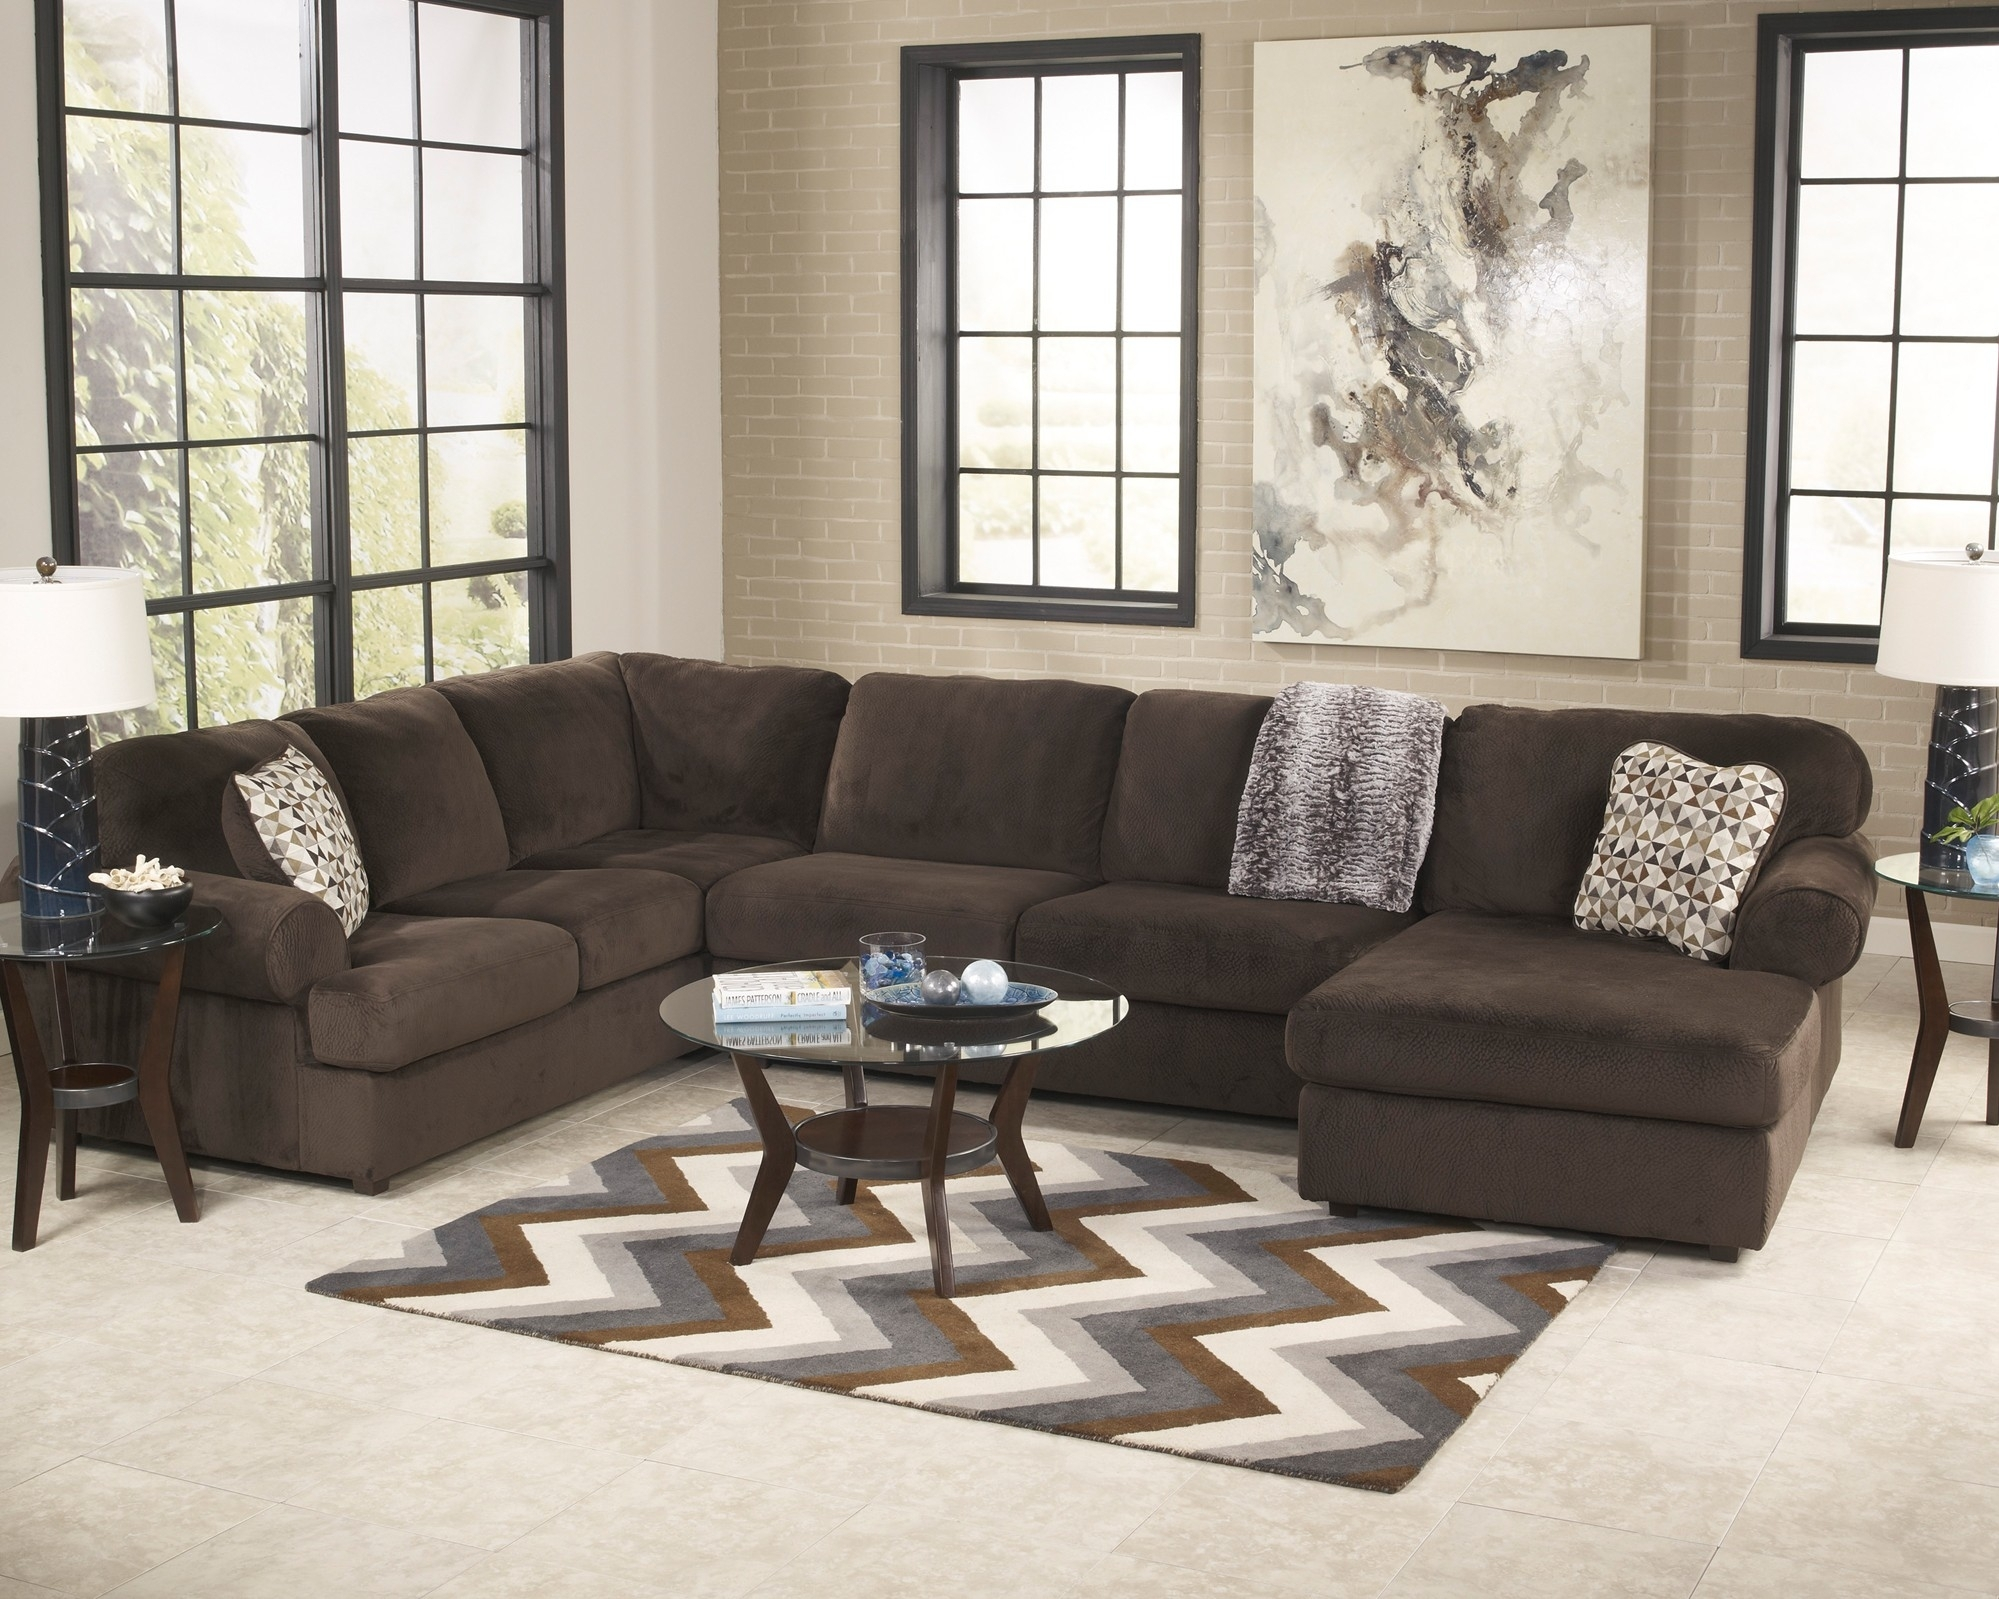 Jessa Place Chocolate 3 Piece Sectional Sofa For $ (Image 8 of 10)